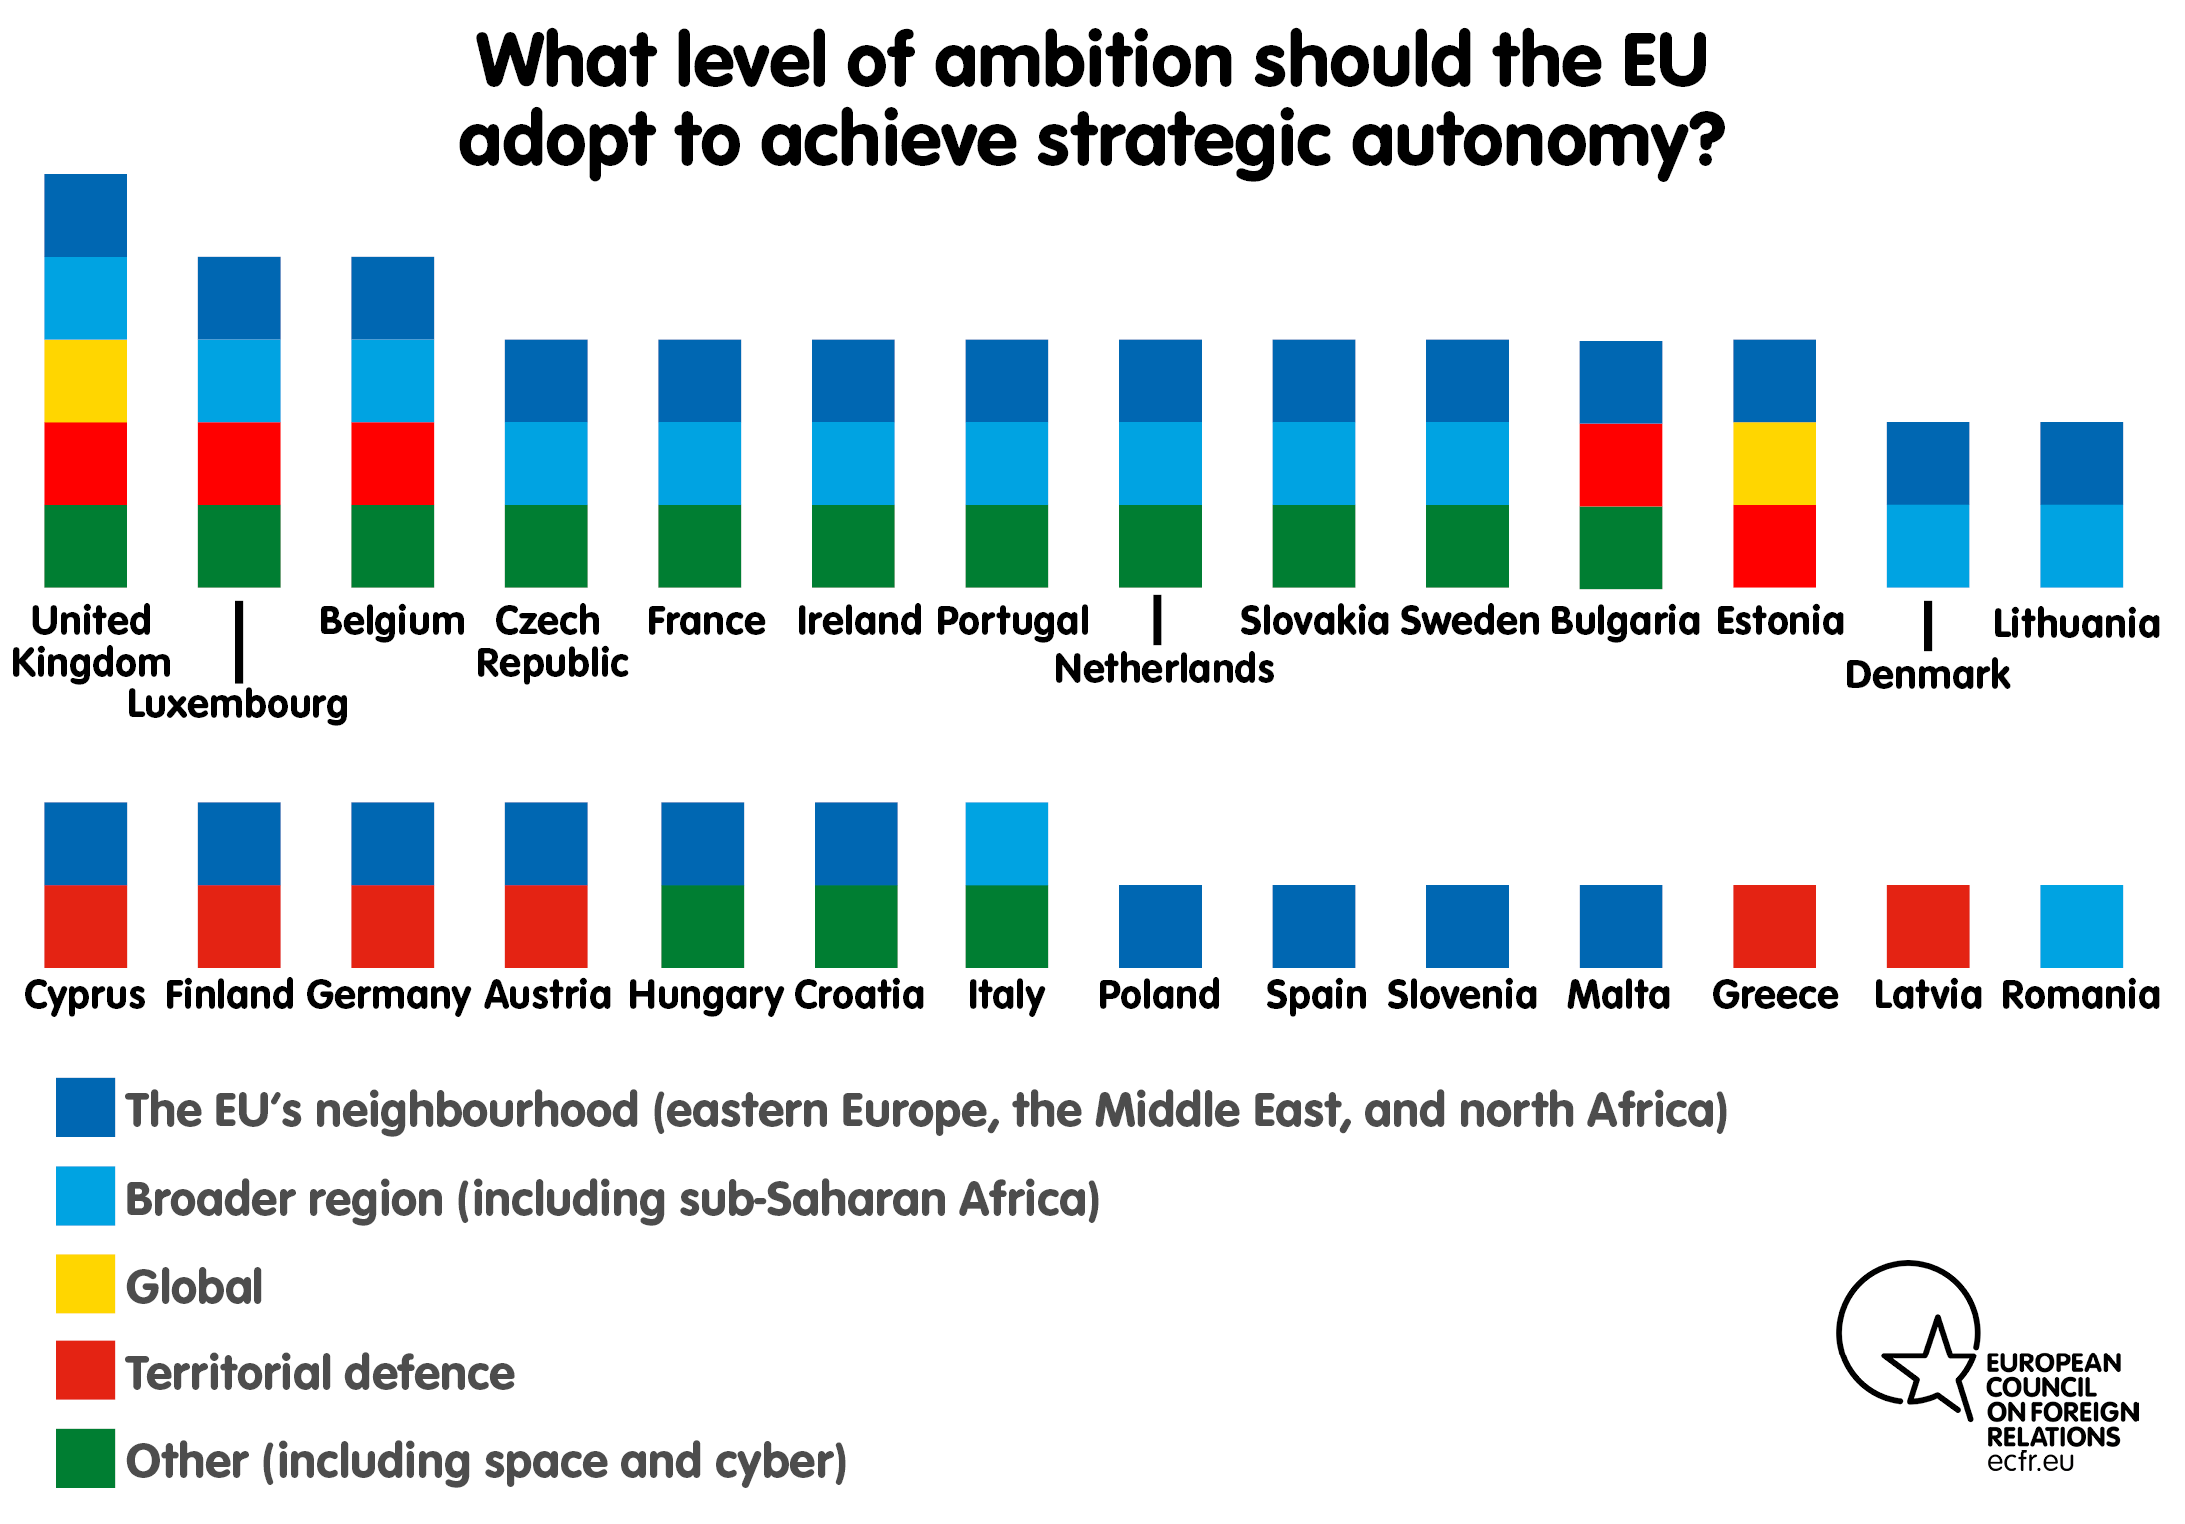 What level of ambition should the EU adopt to achieve strategic autonomy